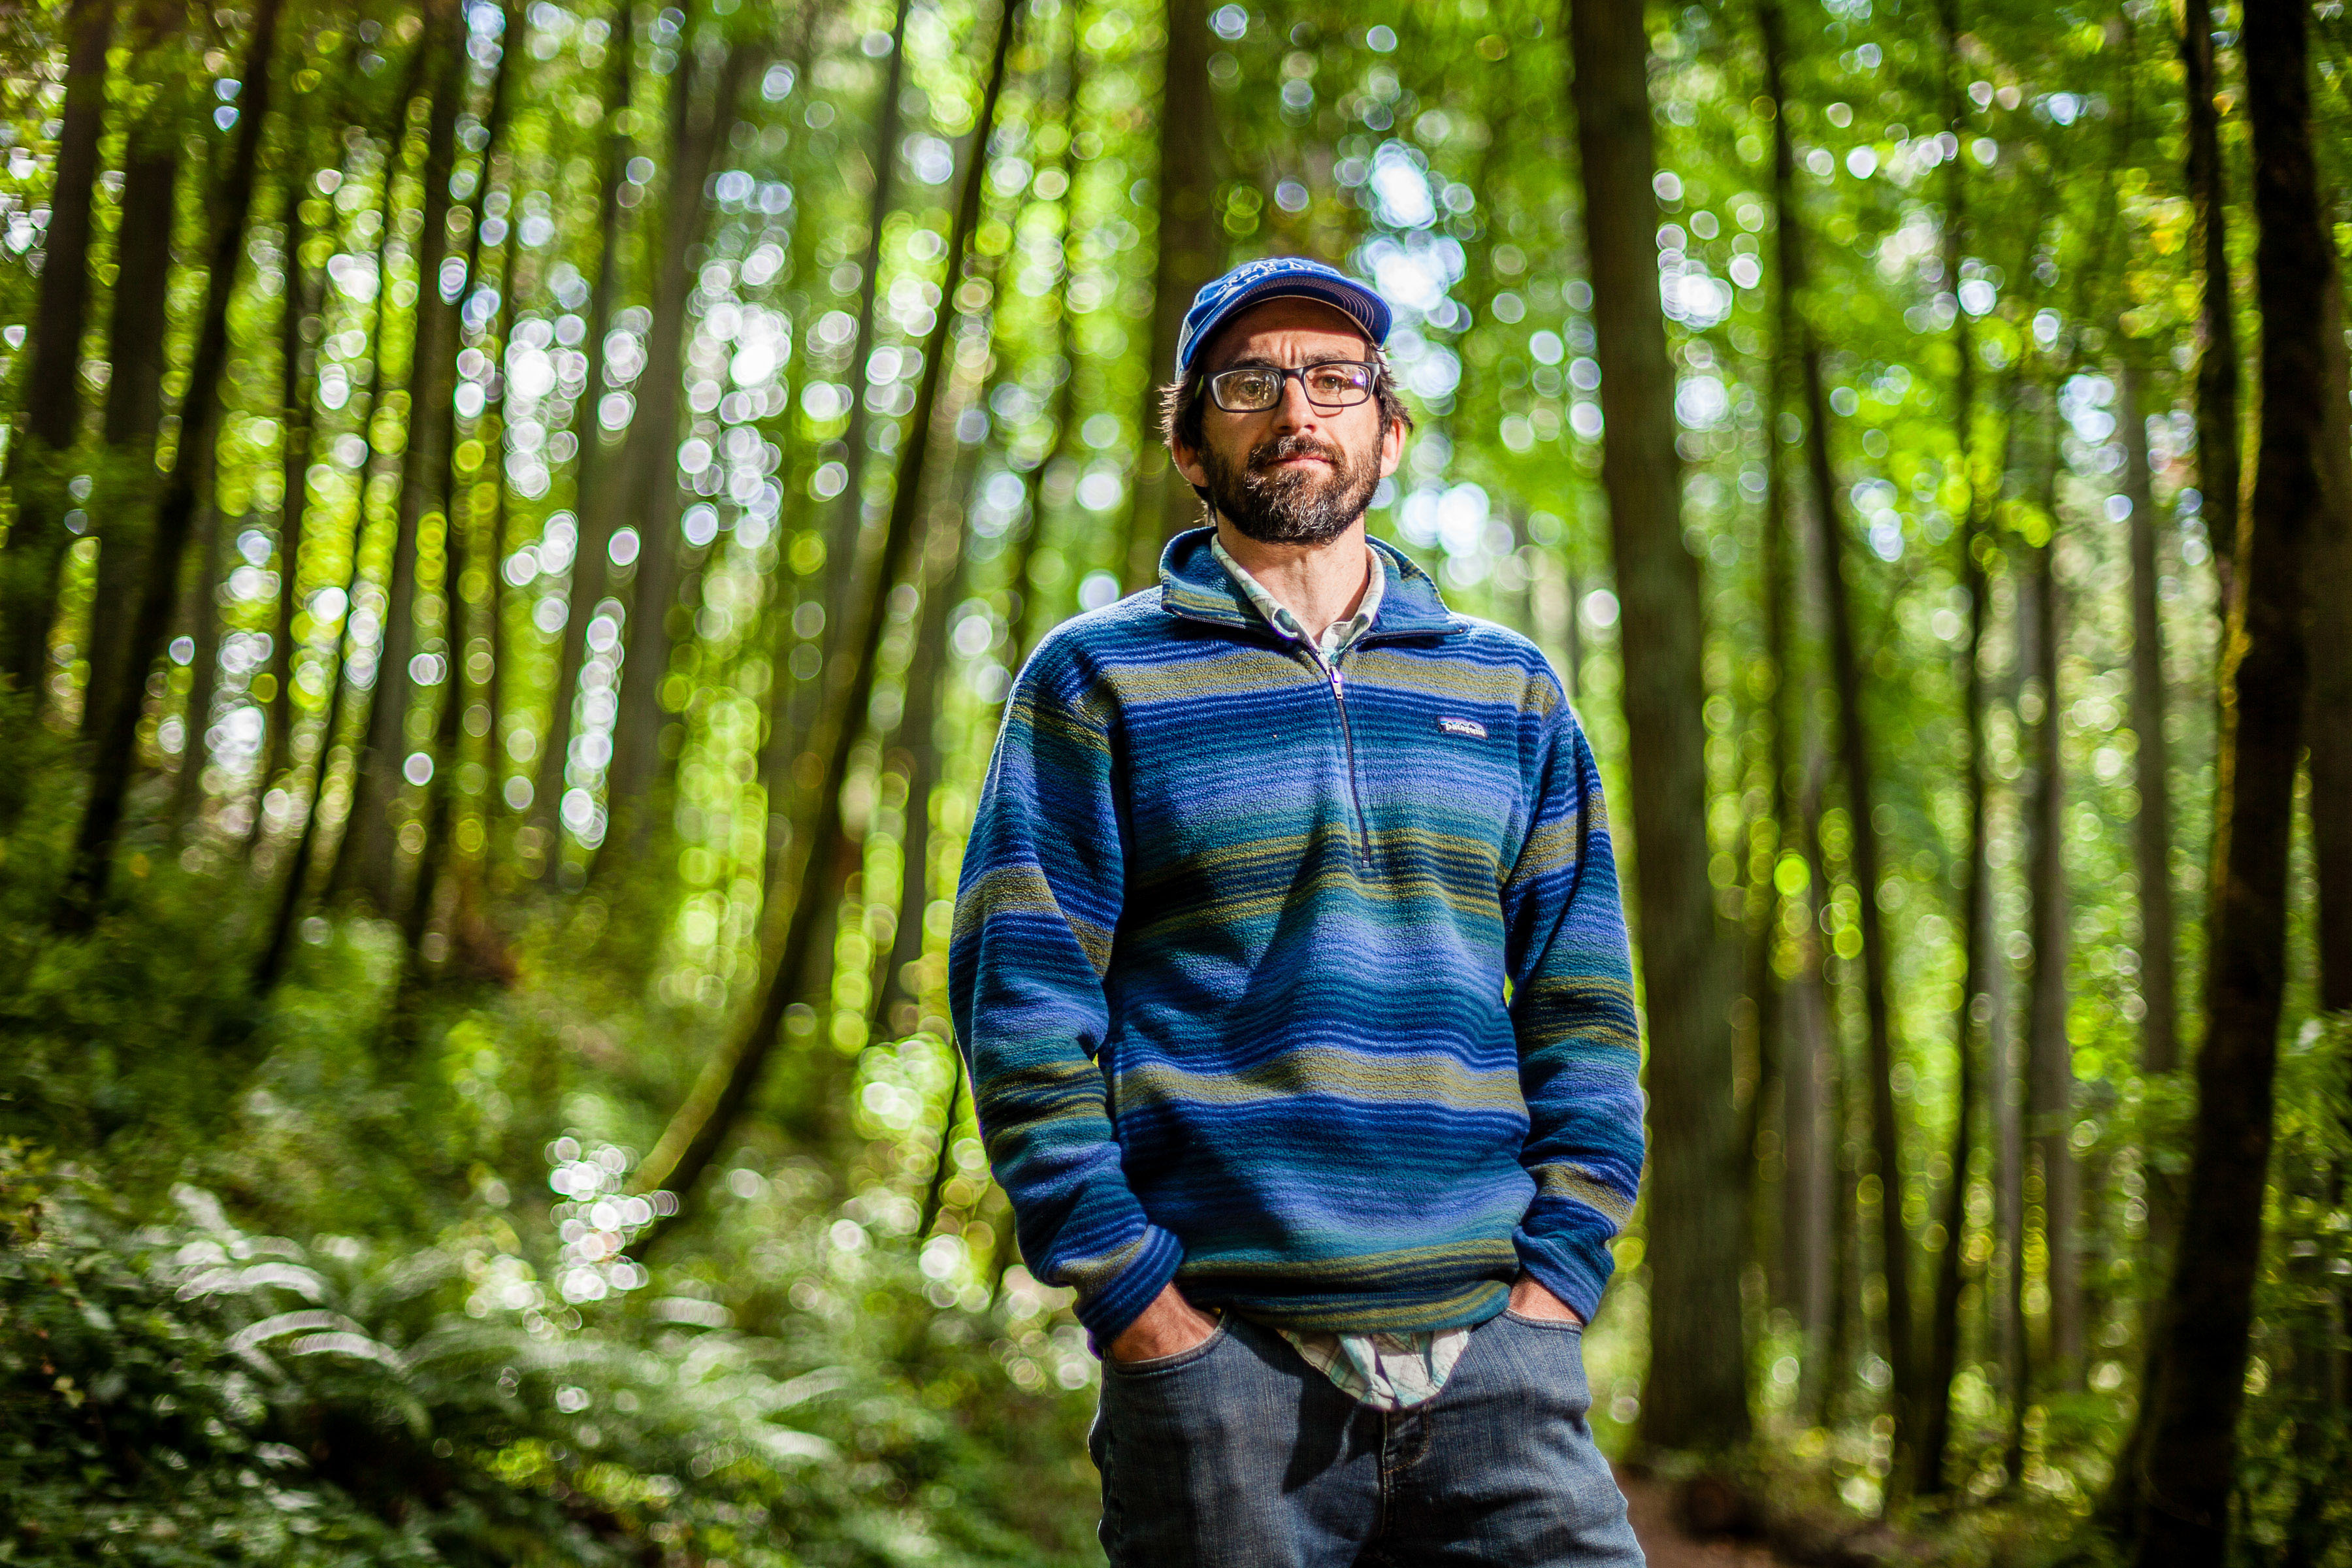 Portrait of Eugene Conservationist standing in forest with blue hat